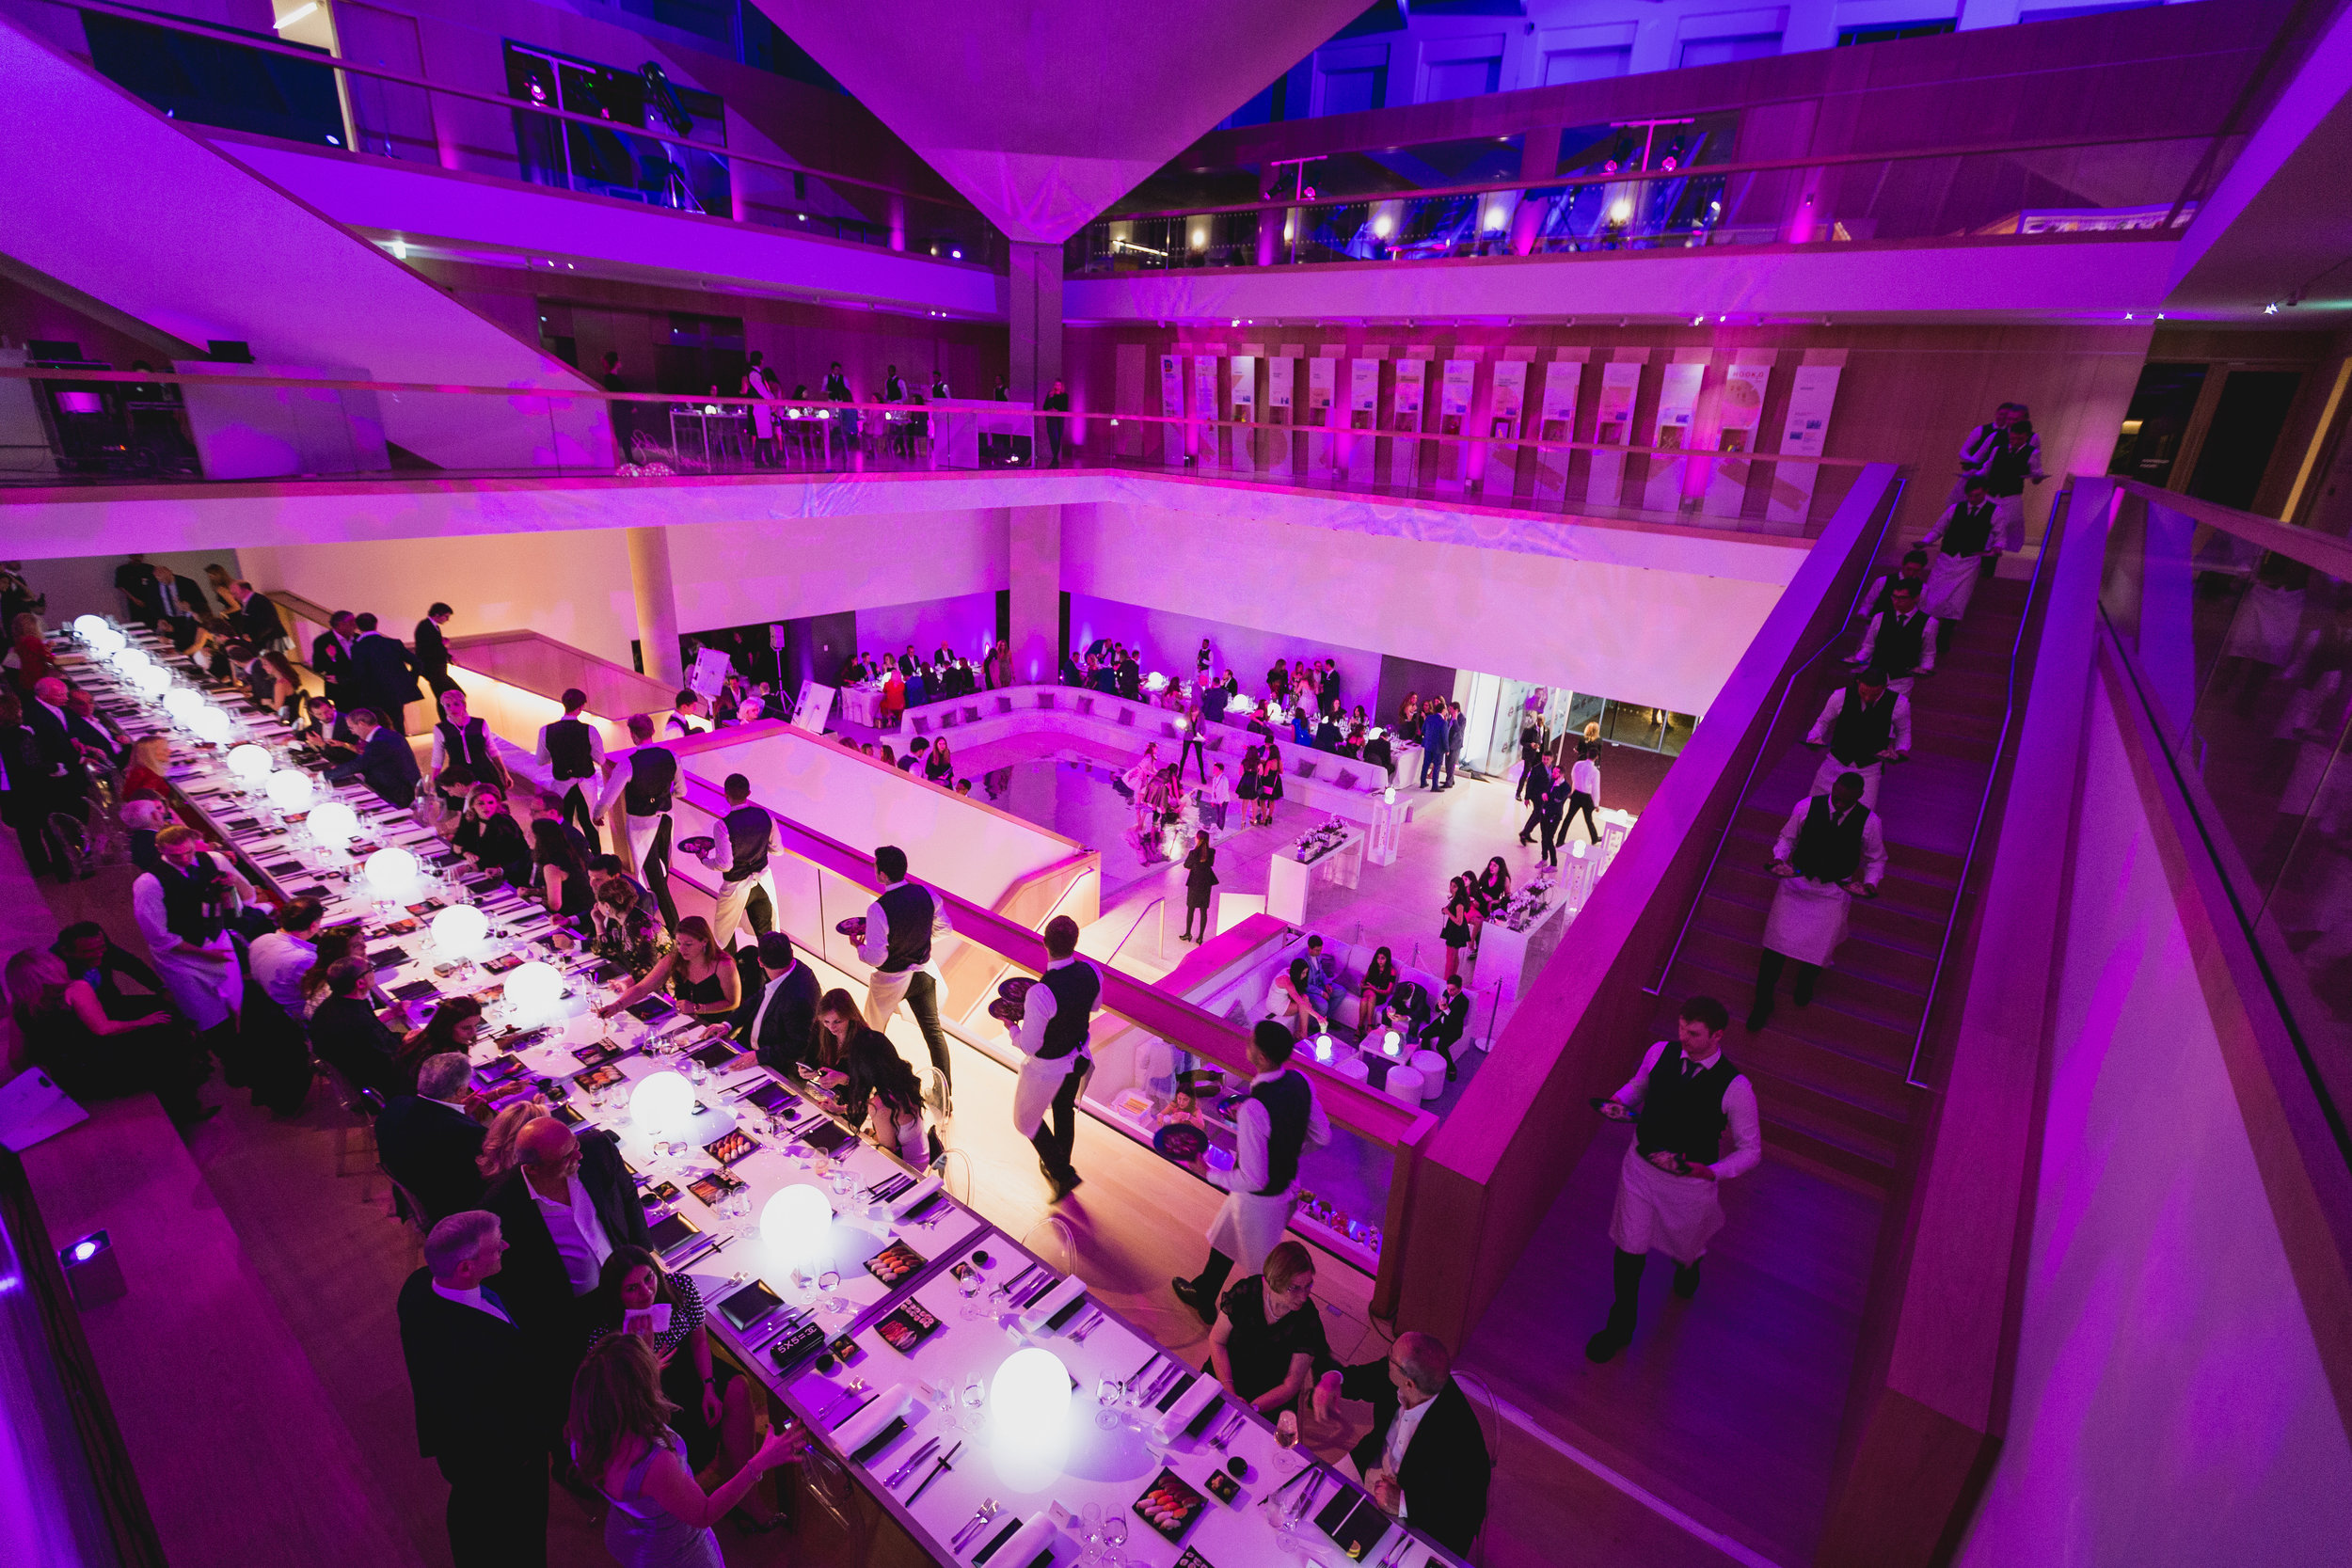 Creventive Design Museum Corporate Event Private Events Design Production Catering Lighting Sound Eventdesign